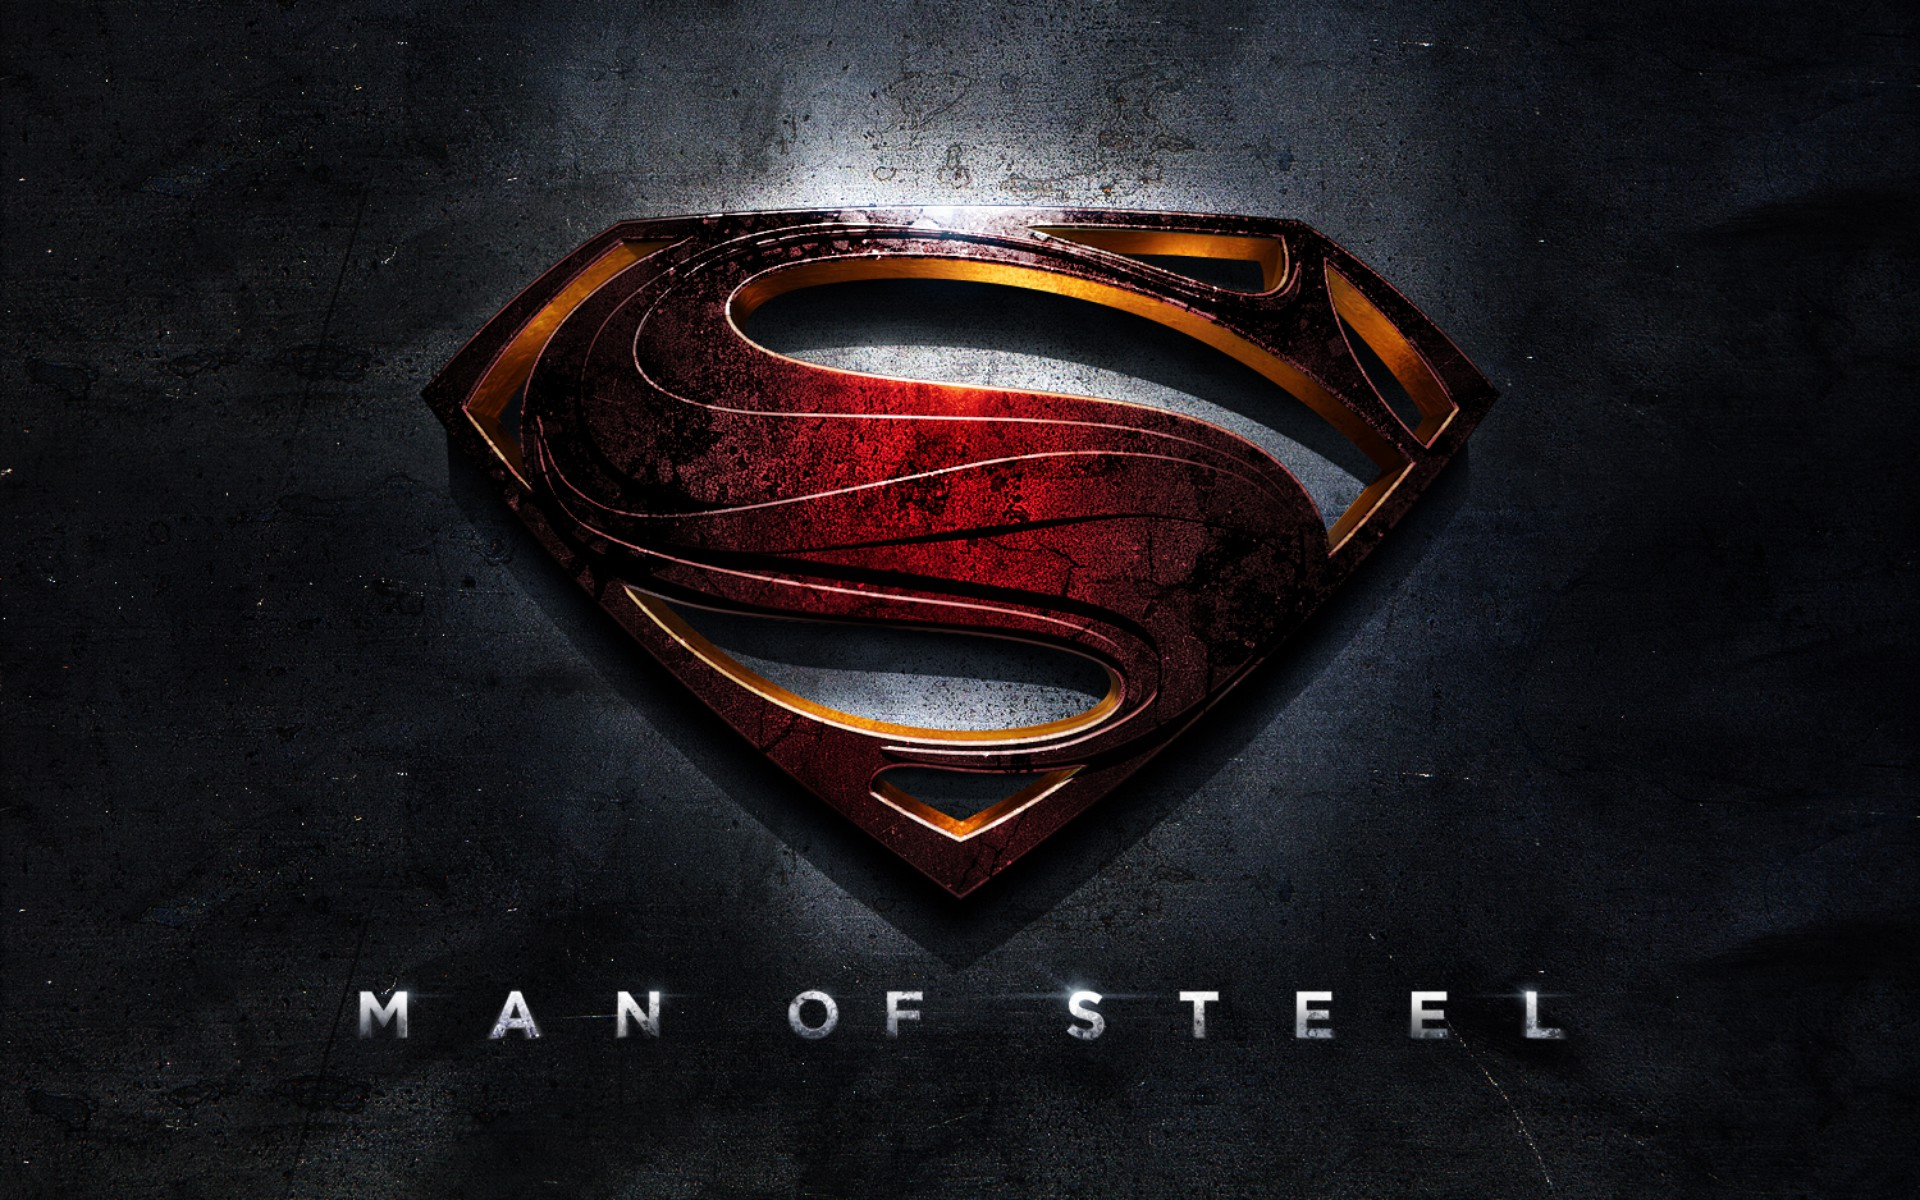 I Stopped The New Superman: Man of Steel Trailer Halfway Through. Here's Why.